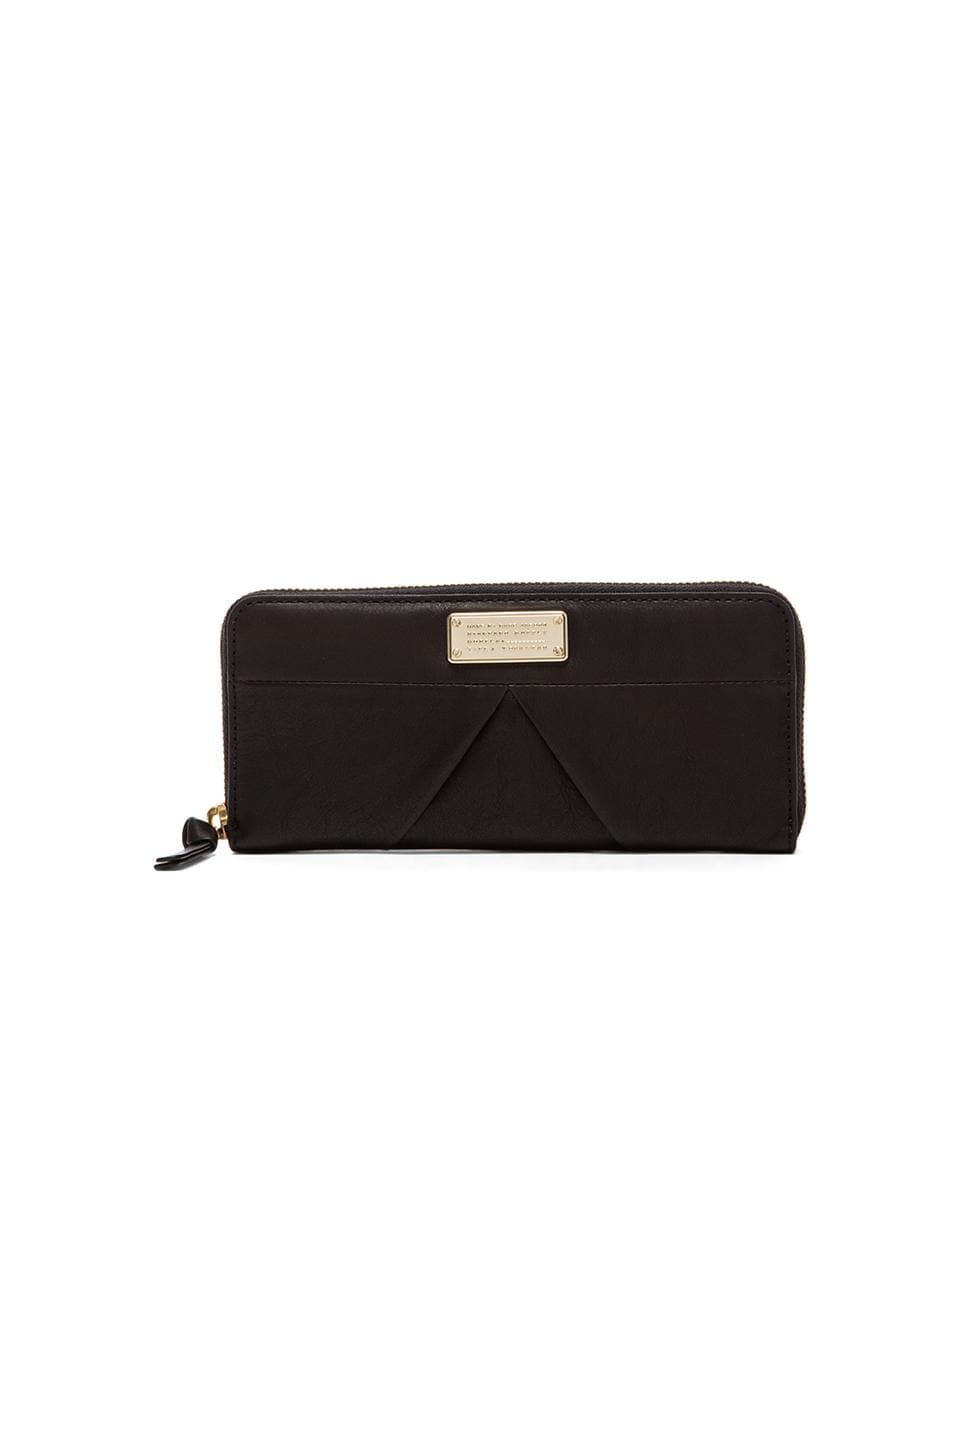 Marc by Marc Jacobs Marchive Slim Zip Around Wallet in Black